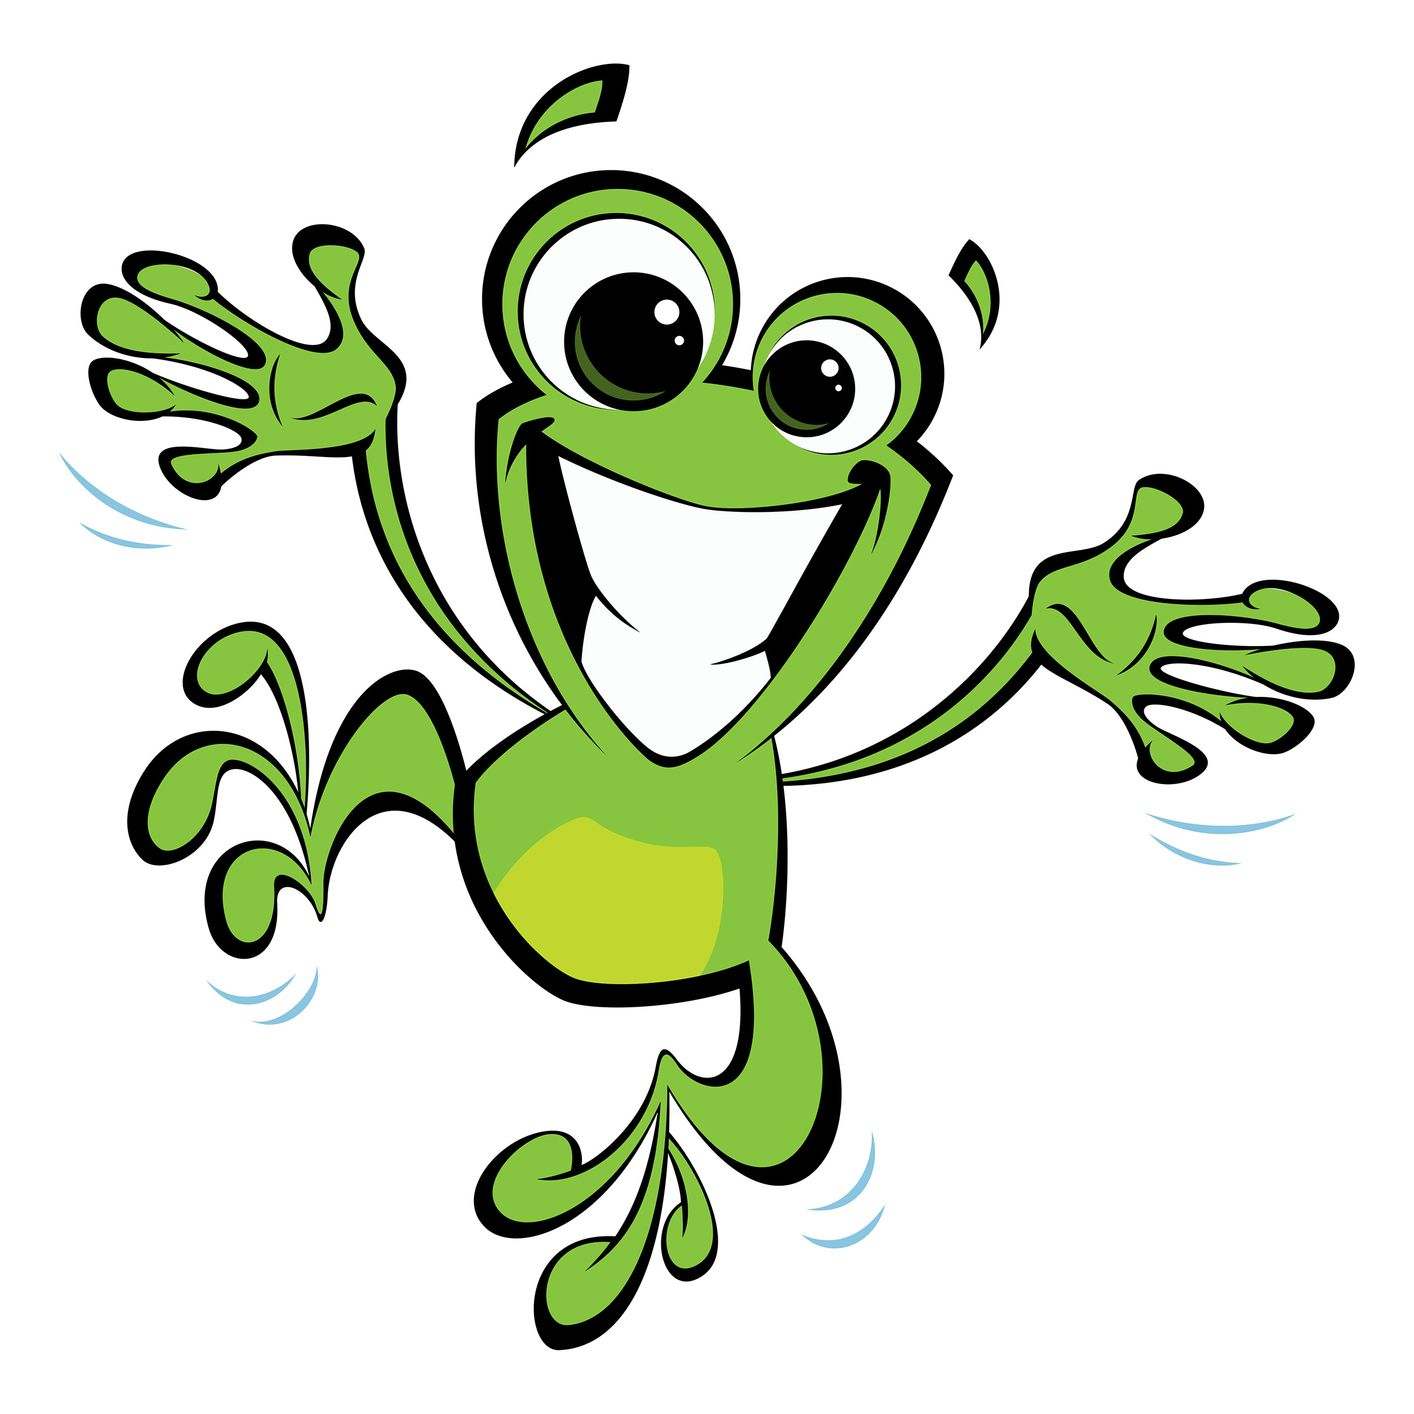 My Current Mood Happy Cartoon Frog Illustration Cute Frogs